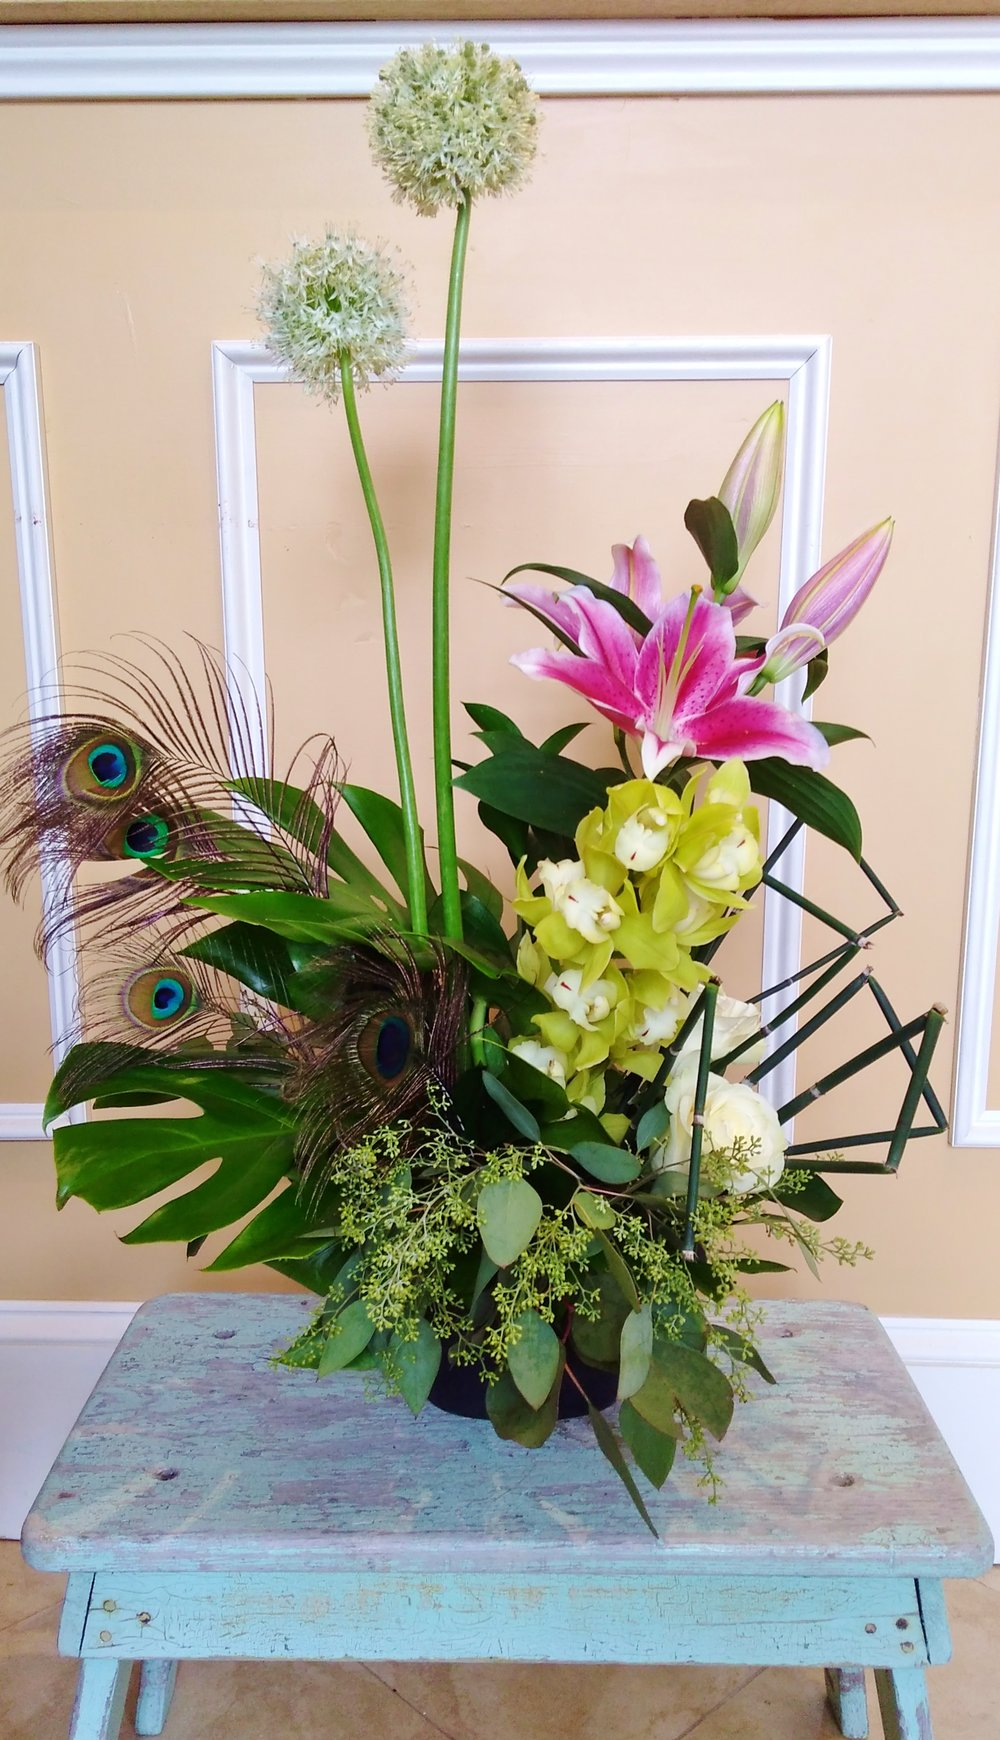 B3 $ 100 - $200 Contemporary arrangment. $100 as shown.